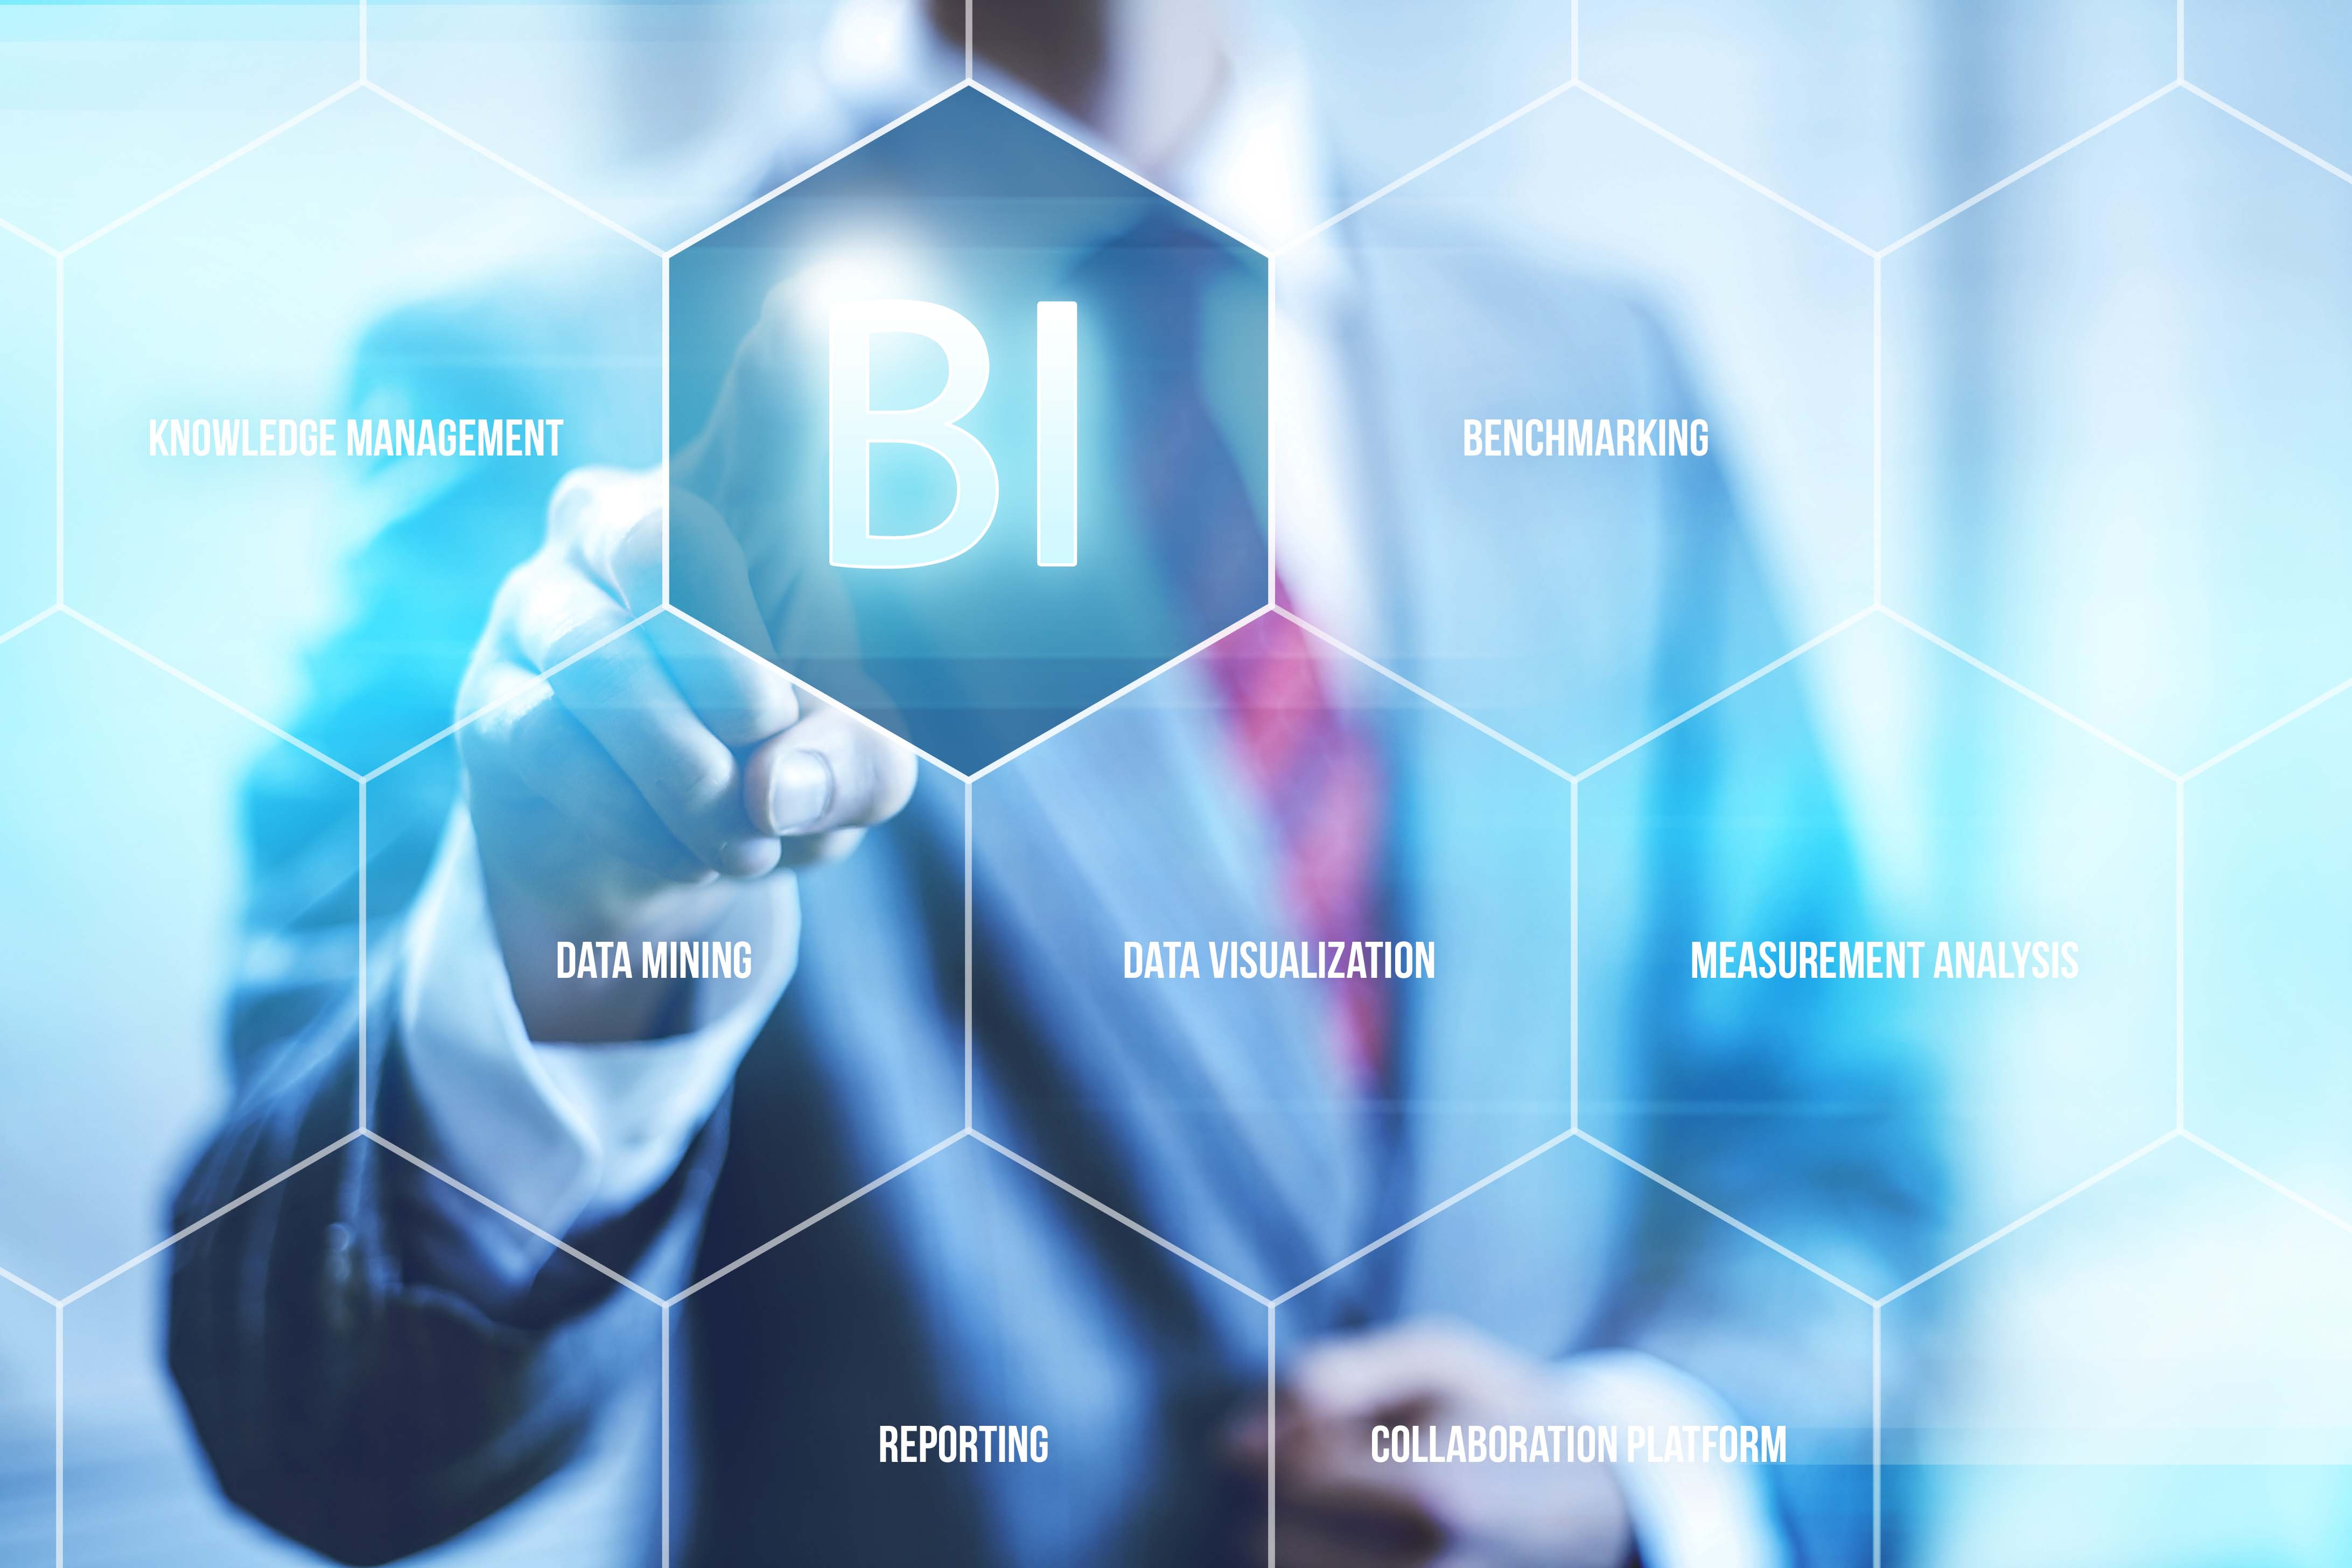 Business Intelligence experts